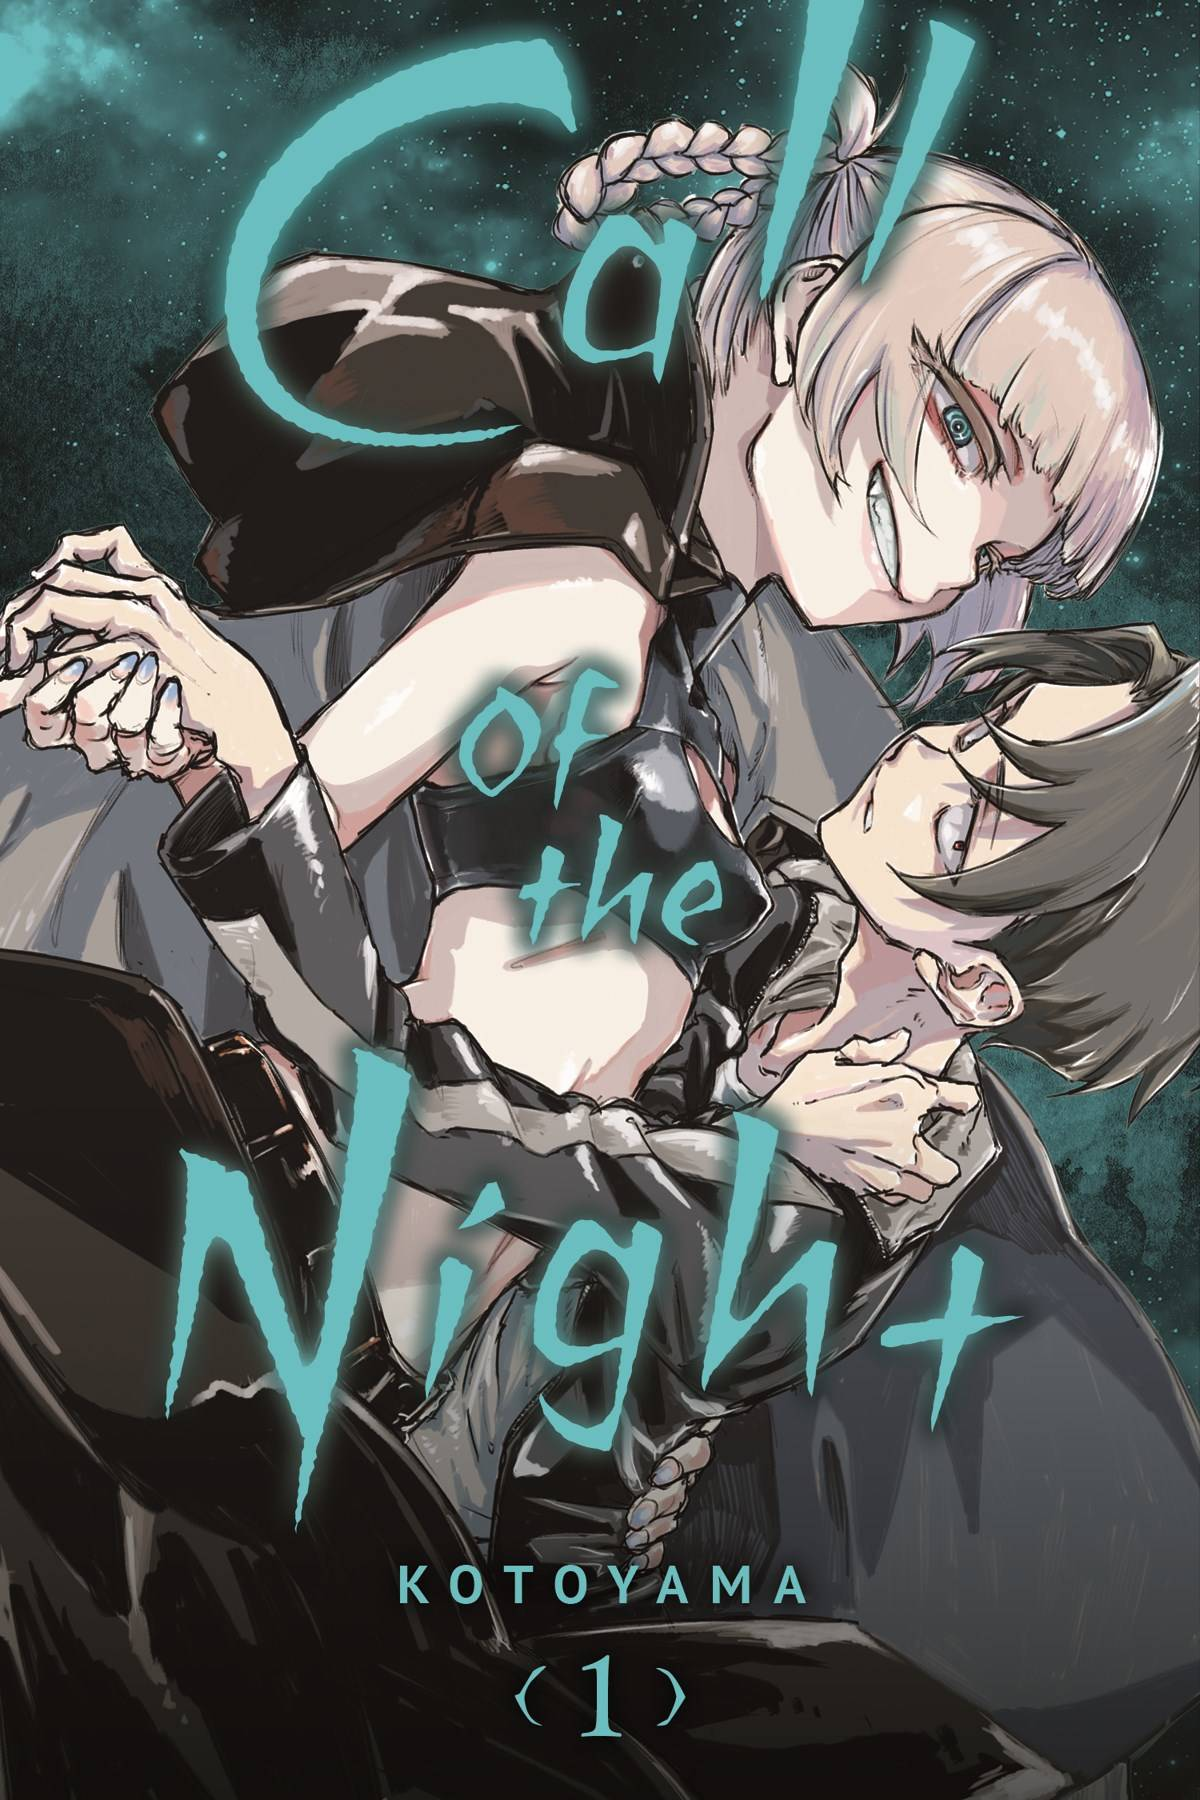 CALL OF THE NIGHT GN VOL 01